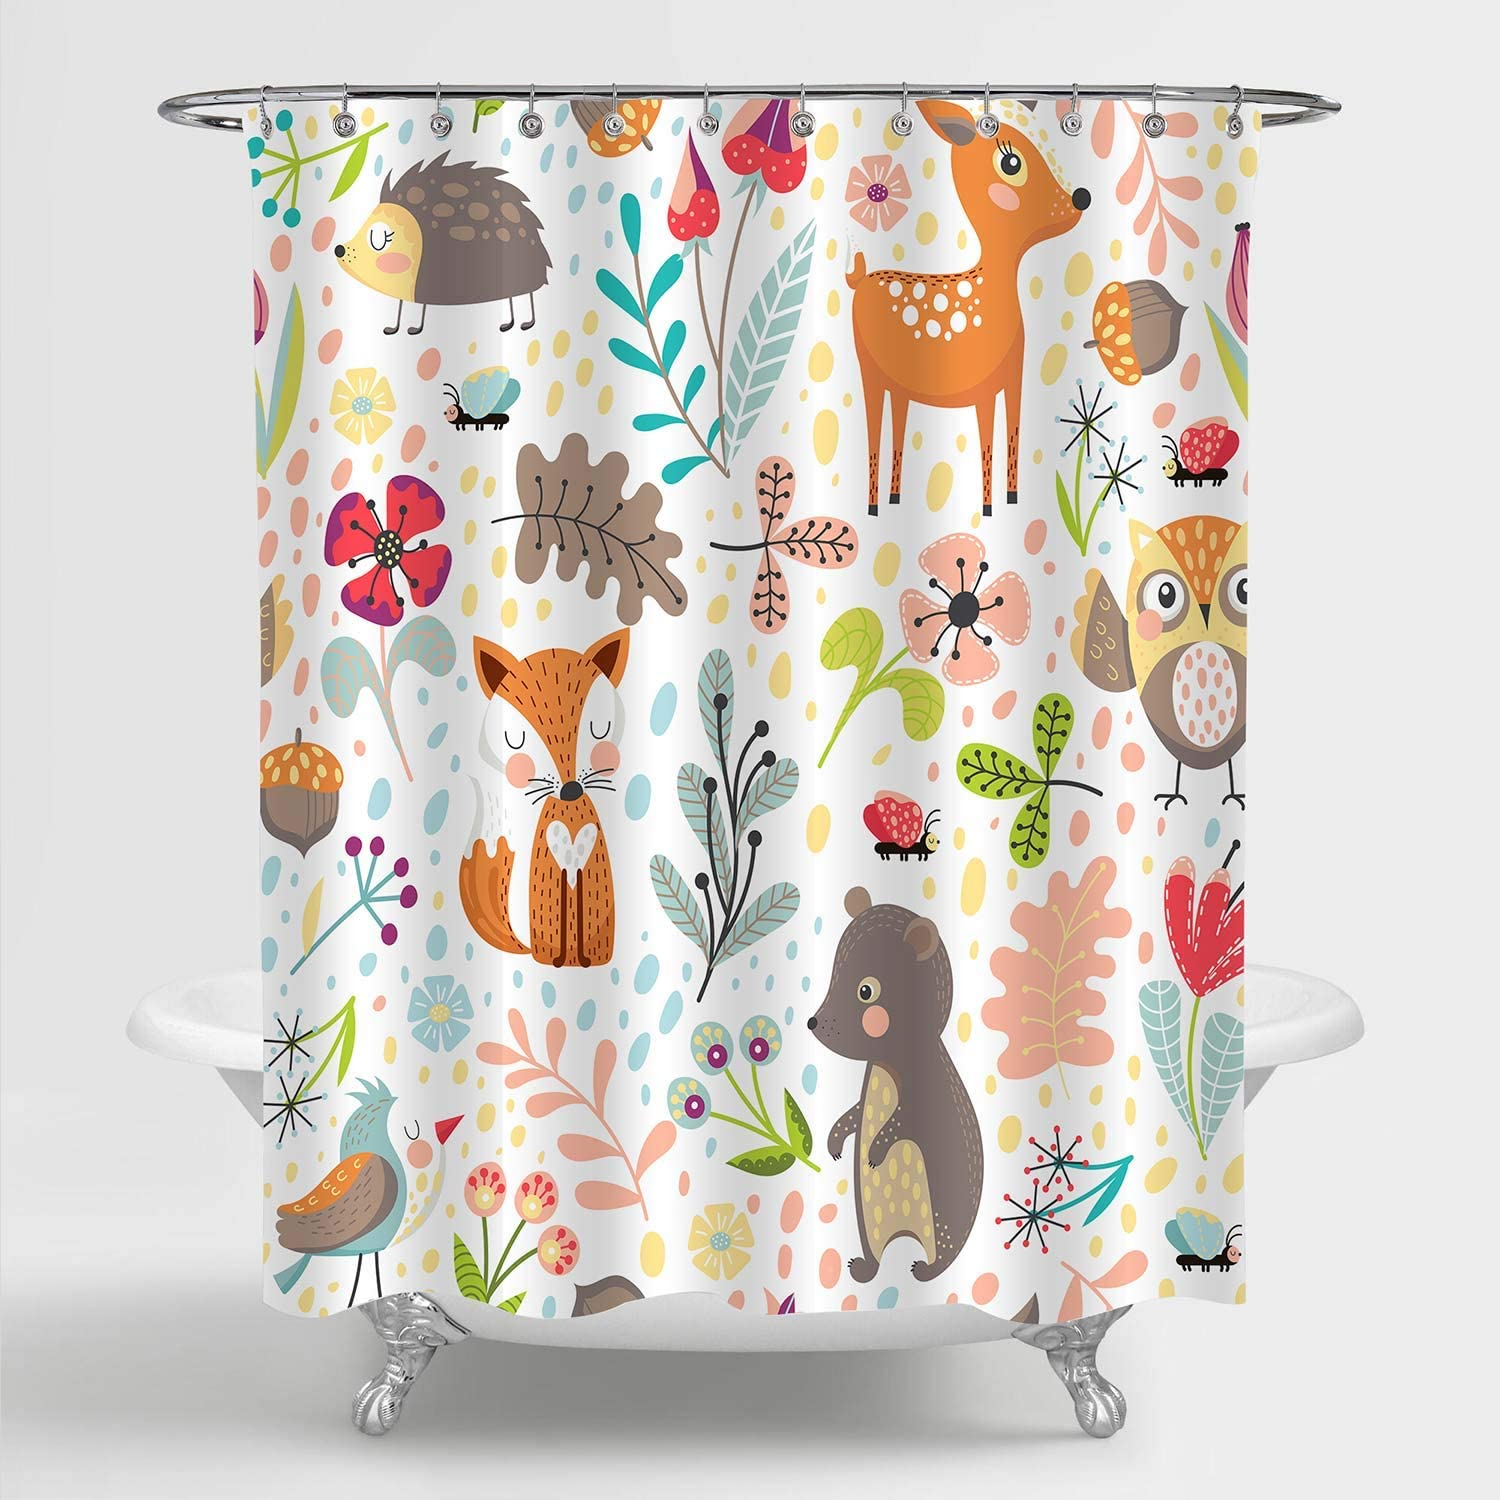 "MitoVilla Kids Shower Curtain Set for Bathroom Decor, Colorful Cartoon Forest Animals Deer, Owl, Fox, Bird and Bear Art Print Bathroom Accessories, for Kids Girls and Boys, 72"" W x 72"" L"